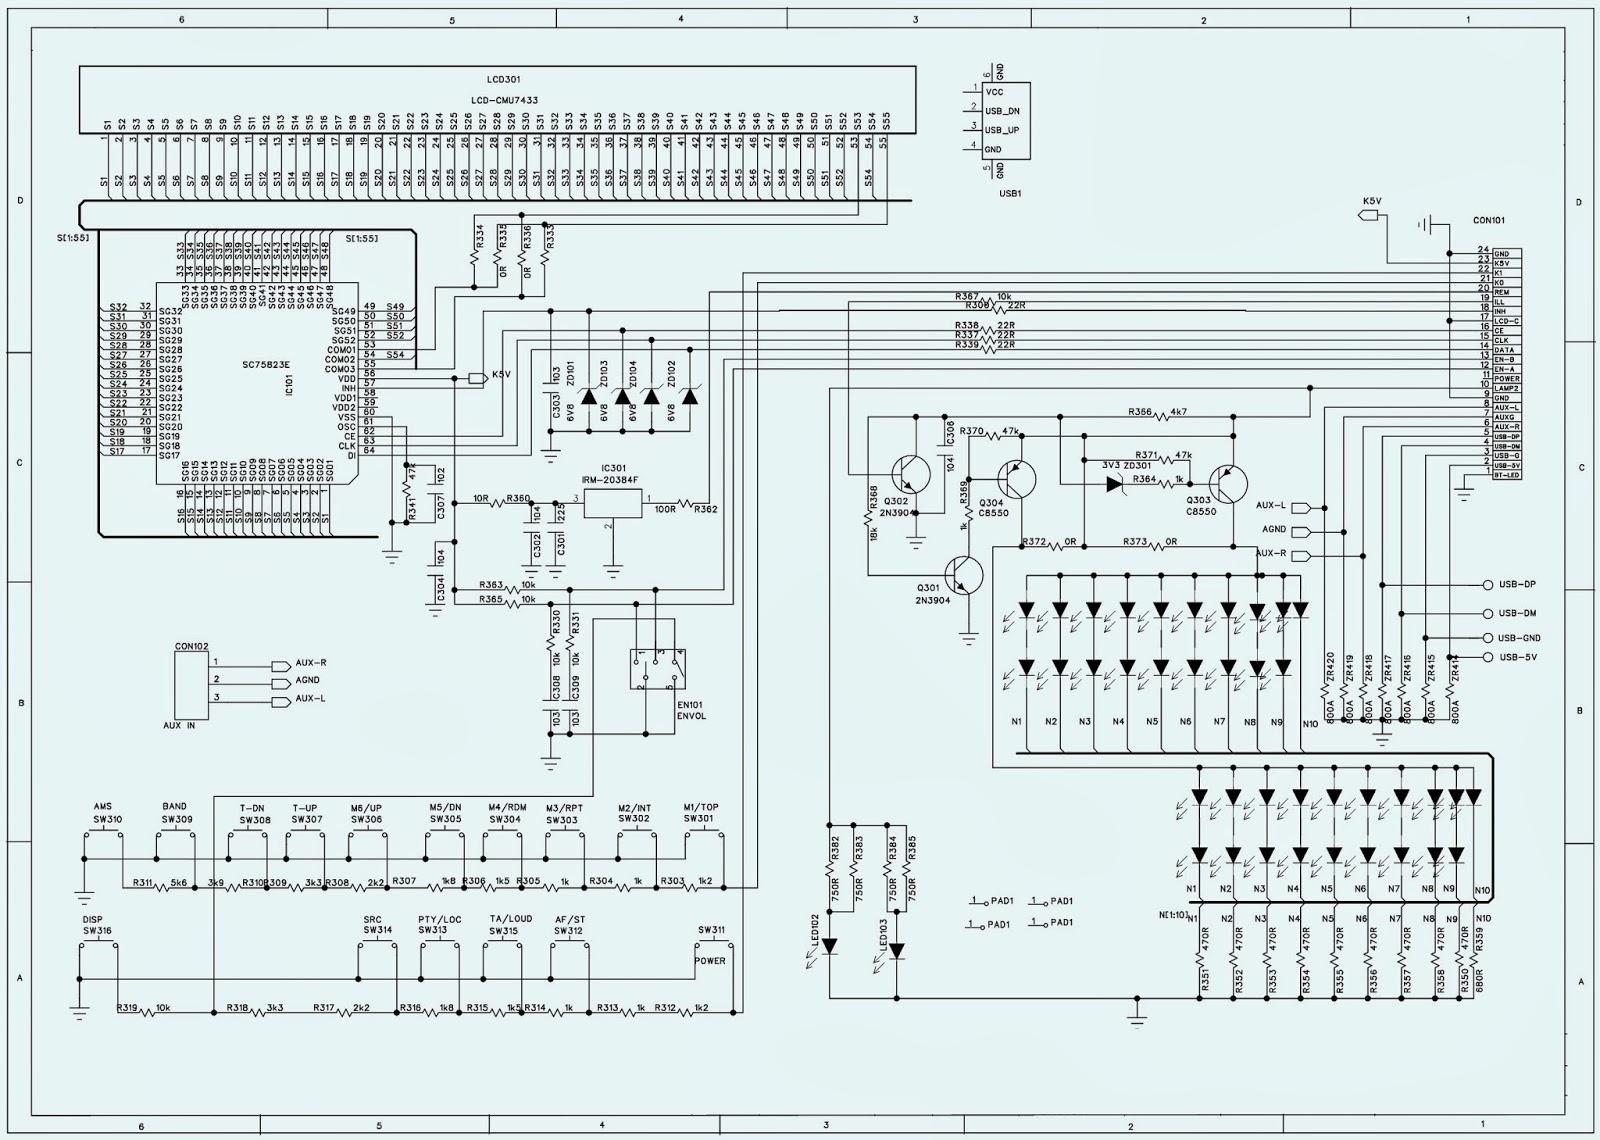 25x4 Sony Xplod Wiring Diagram, 25x4, Get Free Image About